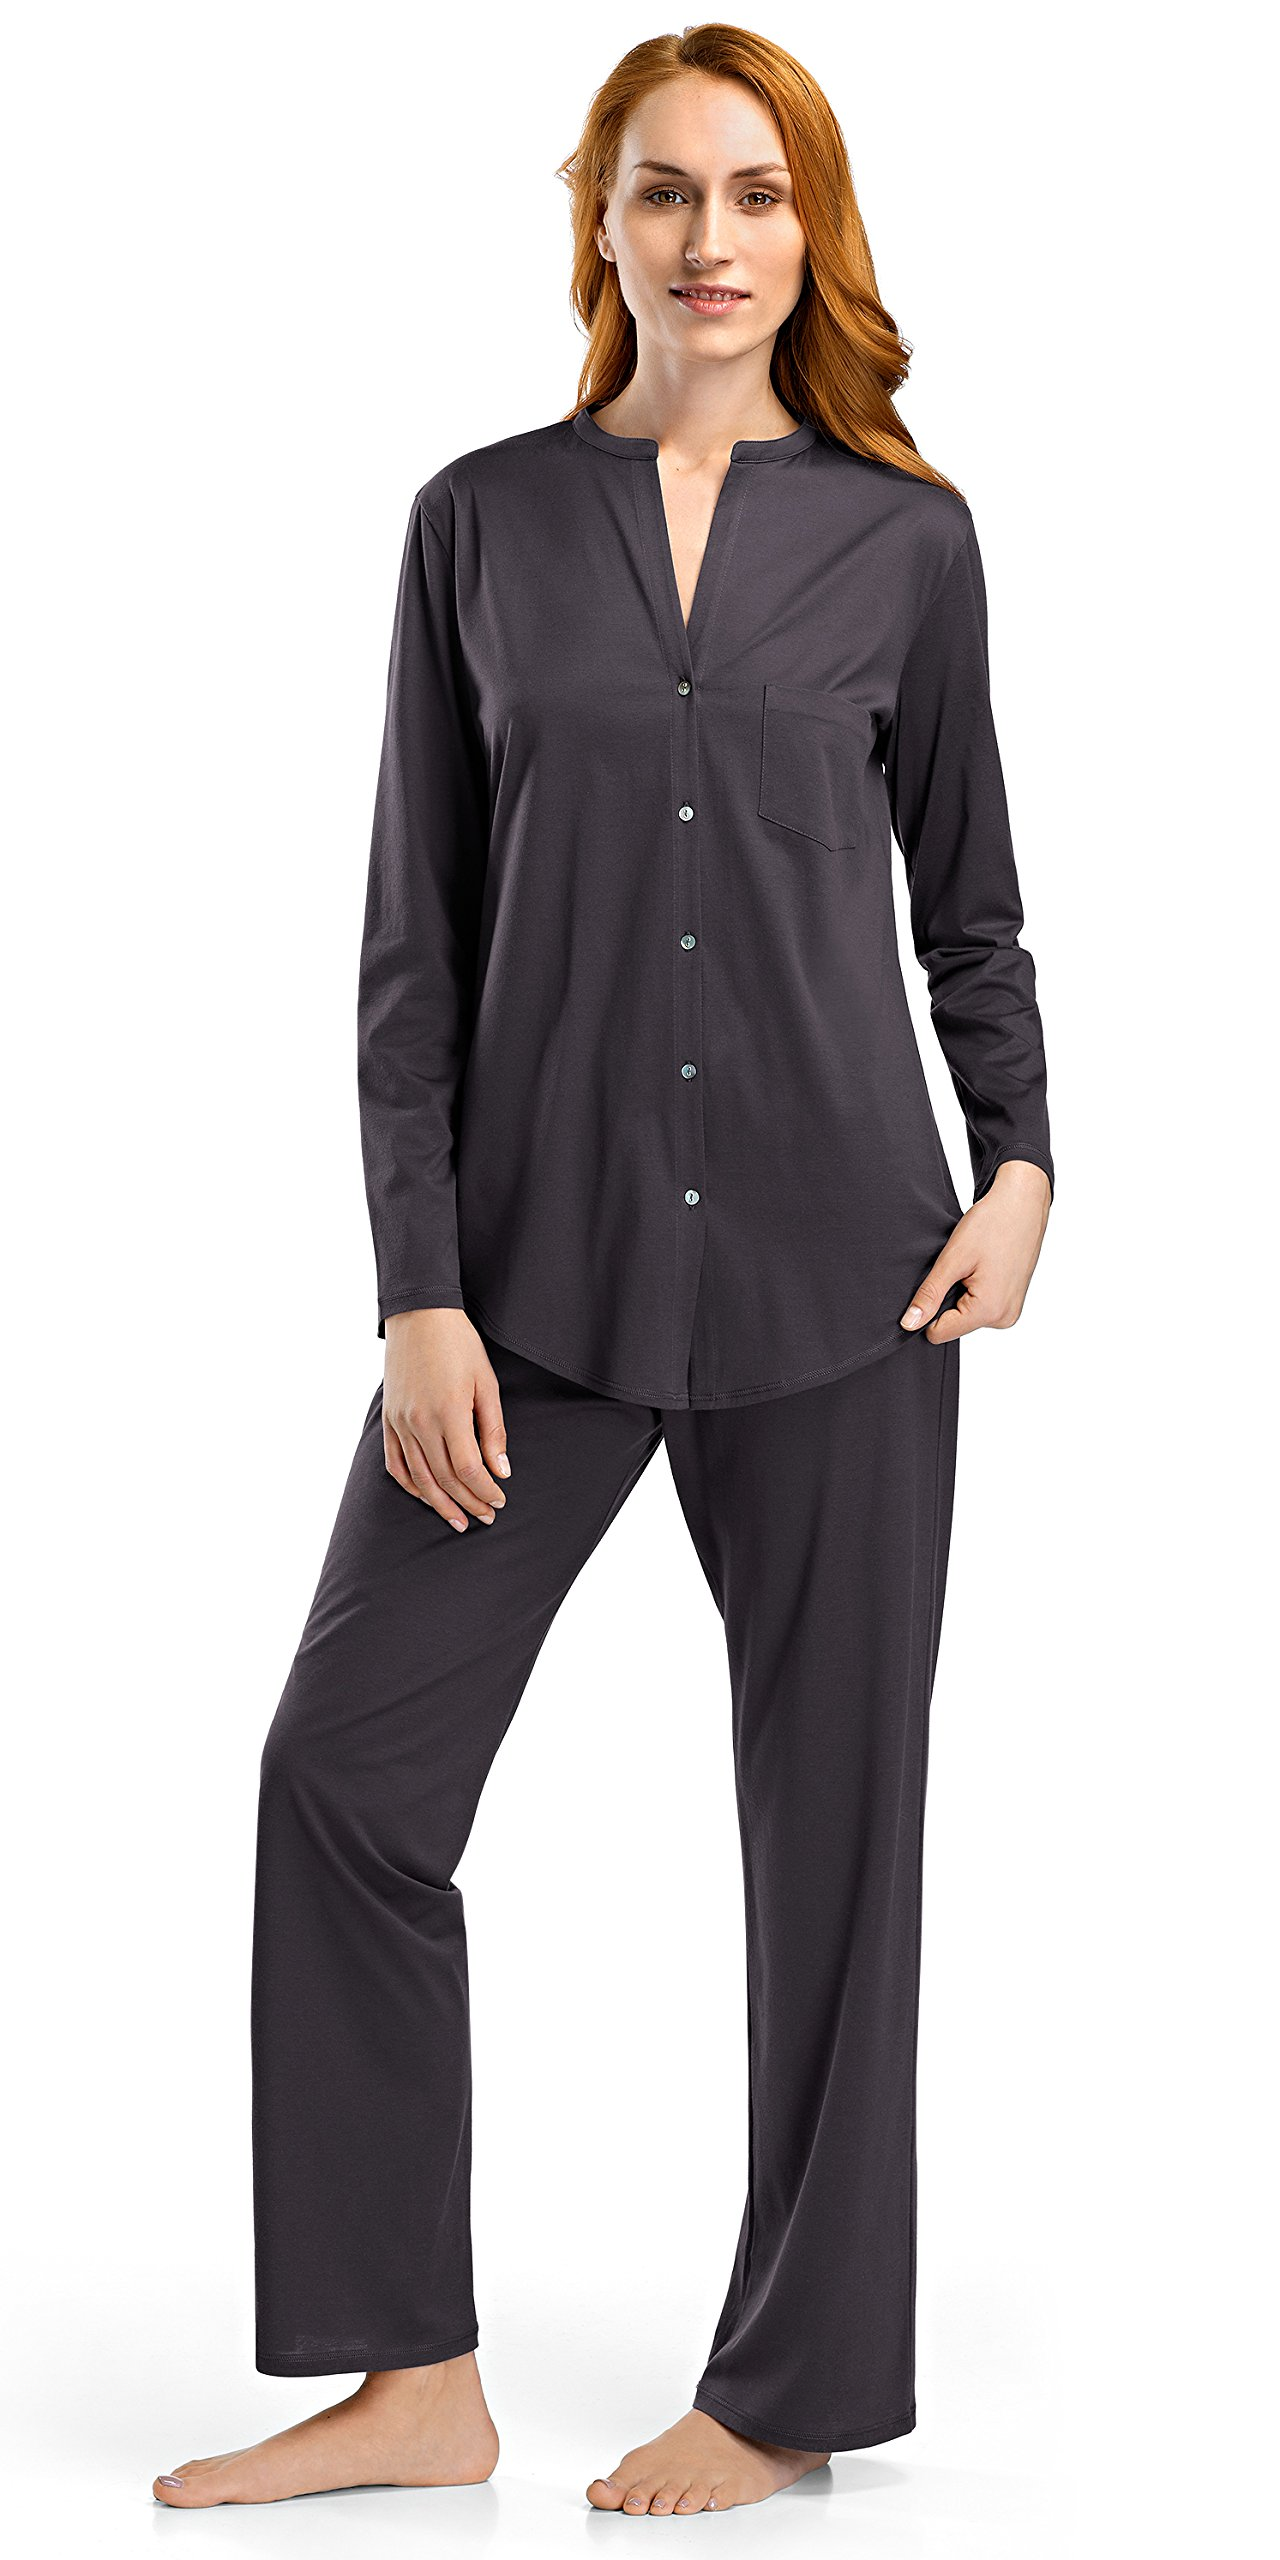 Hanro Women's Cotton Deluxe Long Sleeve Pajama Set, Carbon, Small